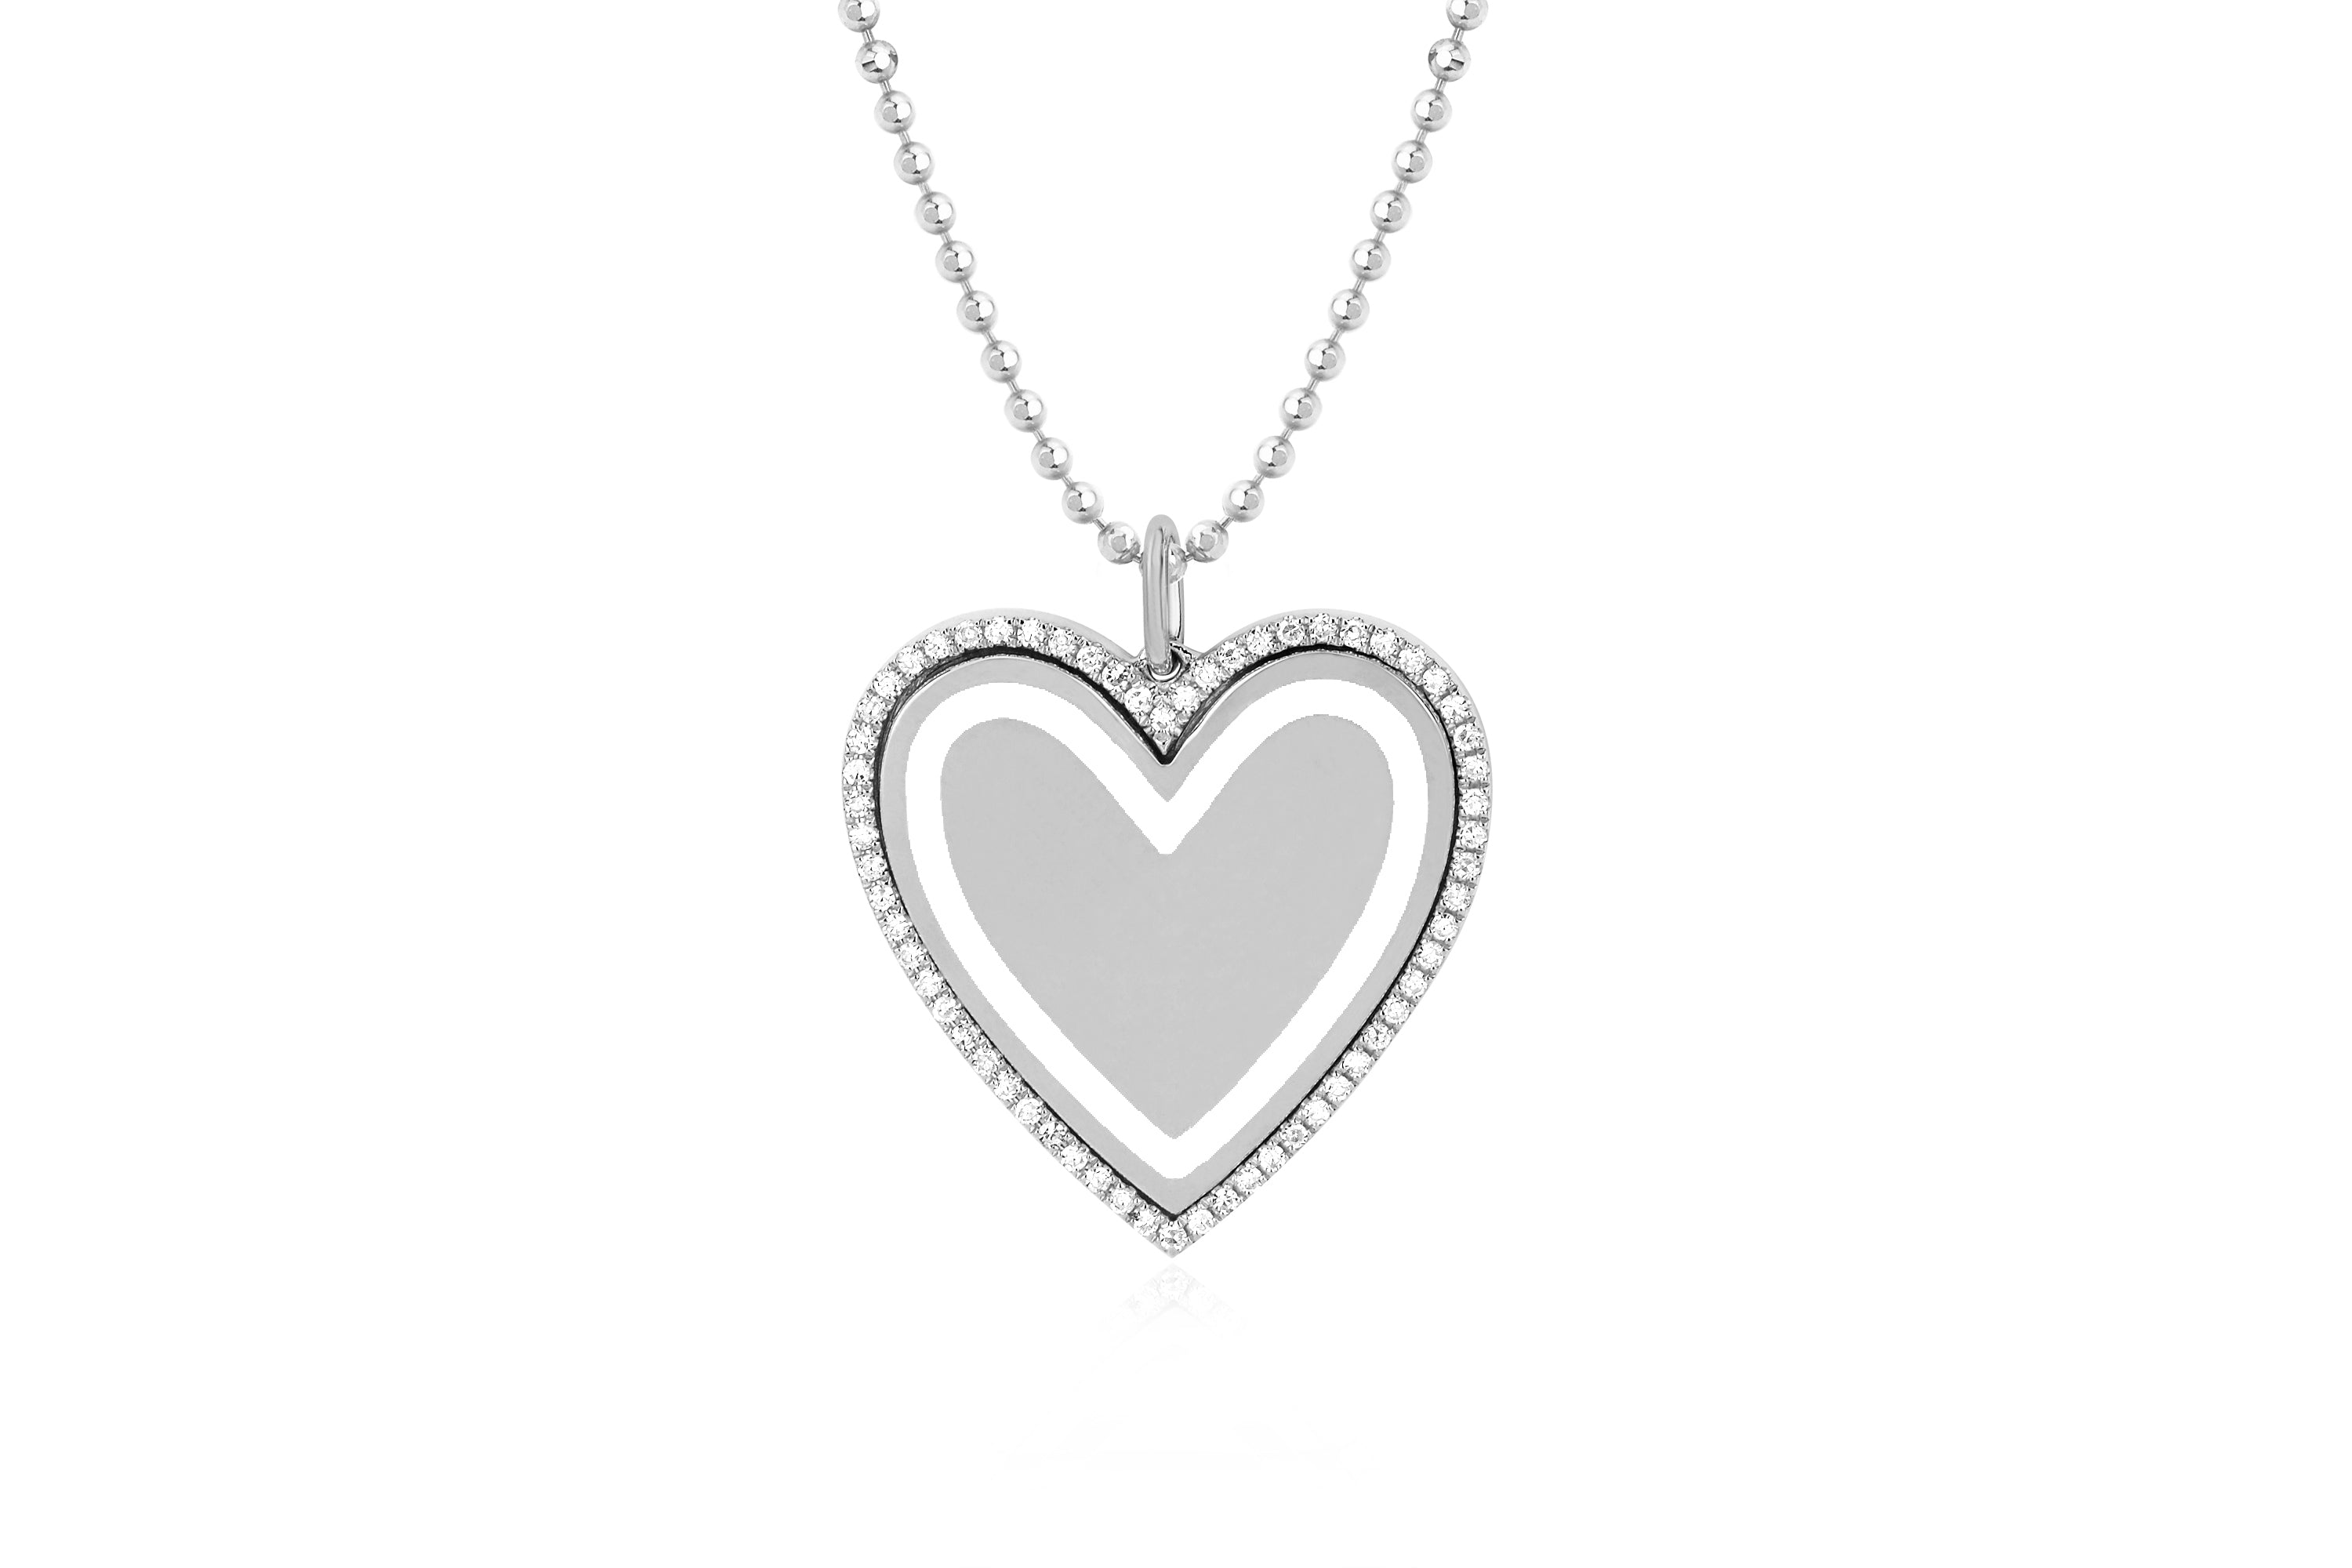 Diamond & White Enamel Heart Necklace